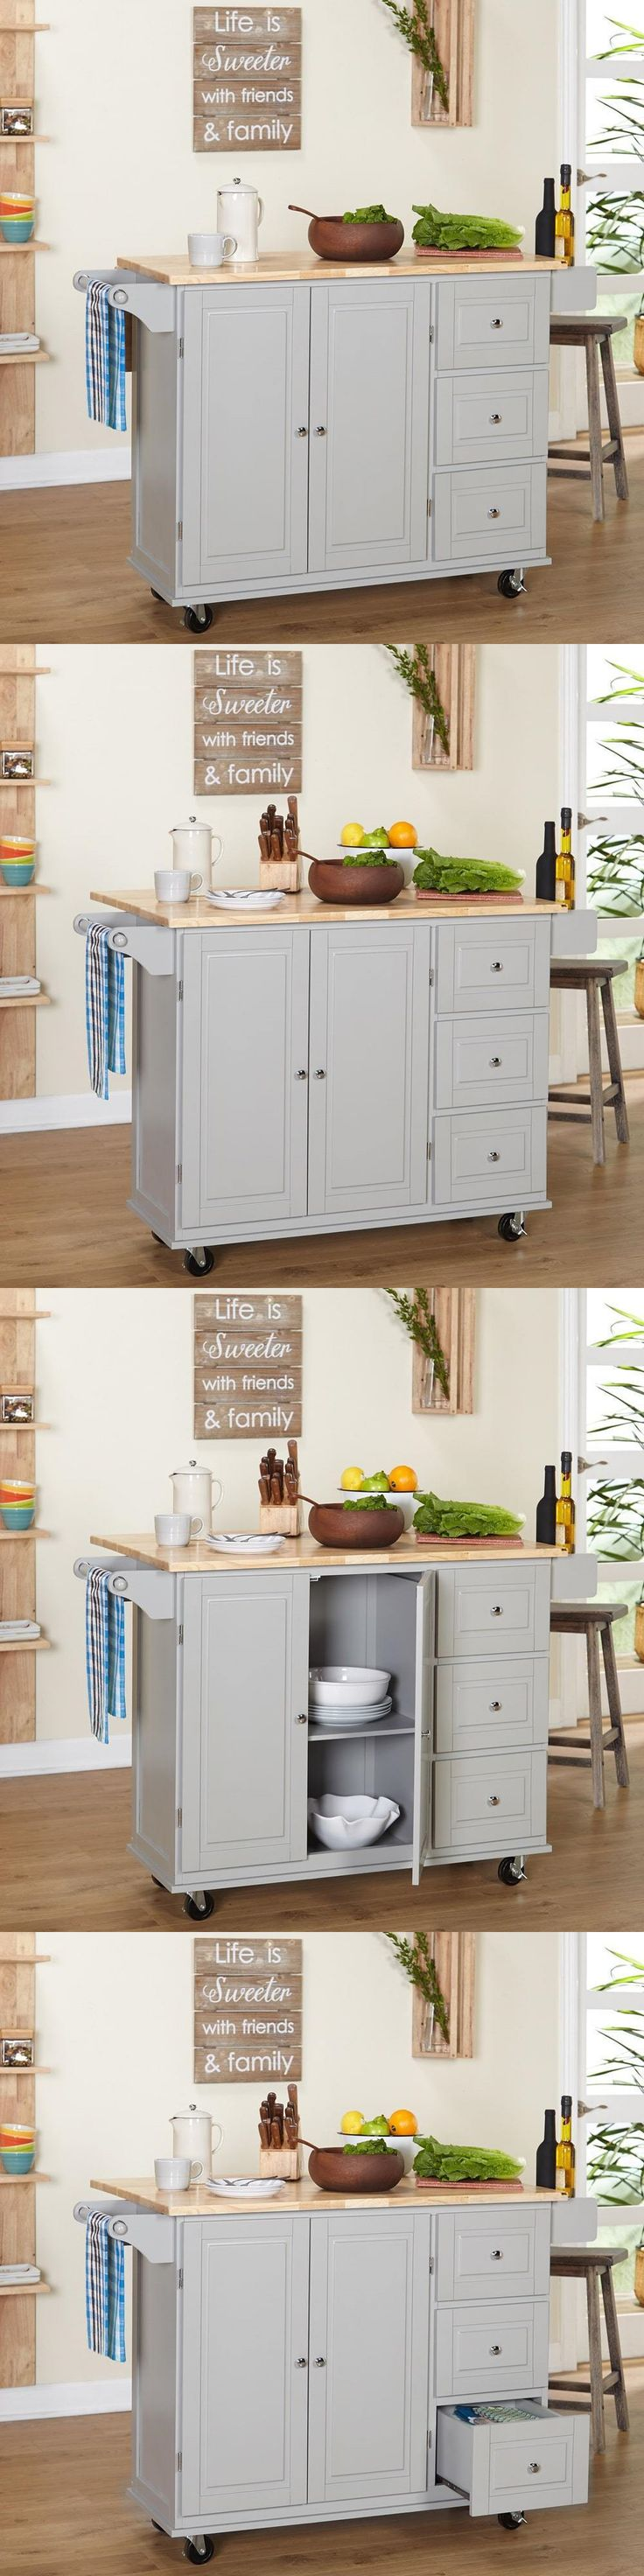 Kitchen Islands Kitchen Carts 115753: Portable Kitchen Island Cart Rolling Storage Wood Cabinet Utility Wheels Drawers -> BUY IT NOW ONLY: $305.99 on eBay!